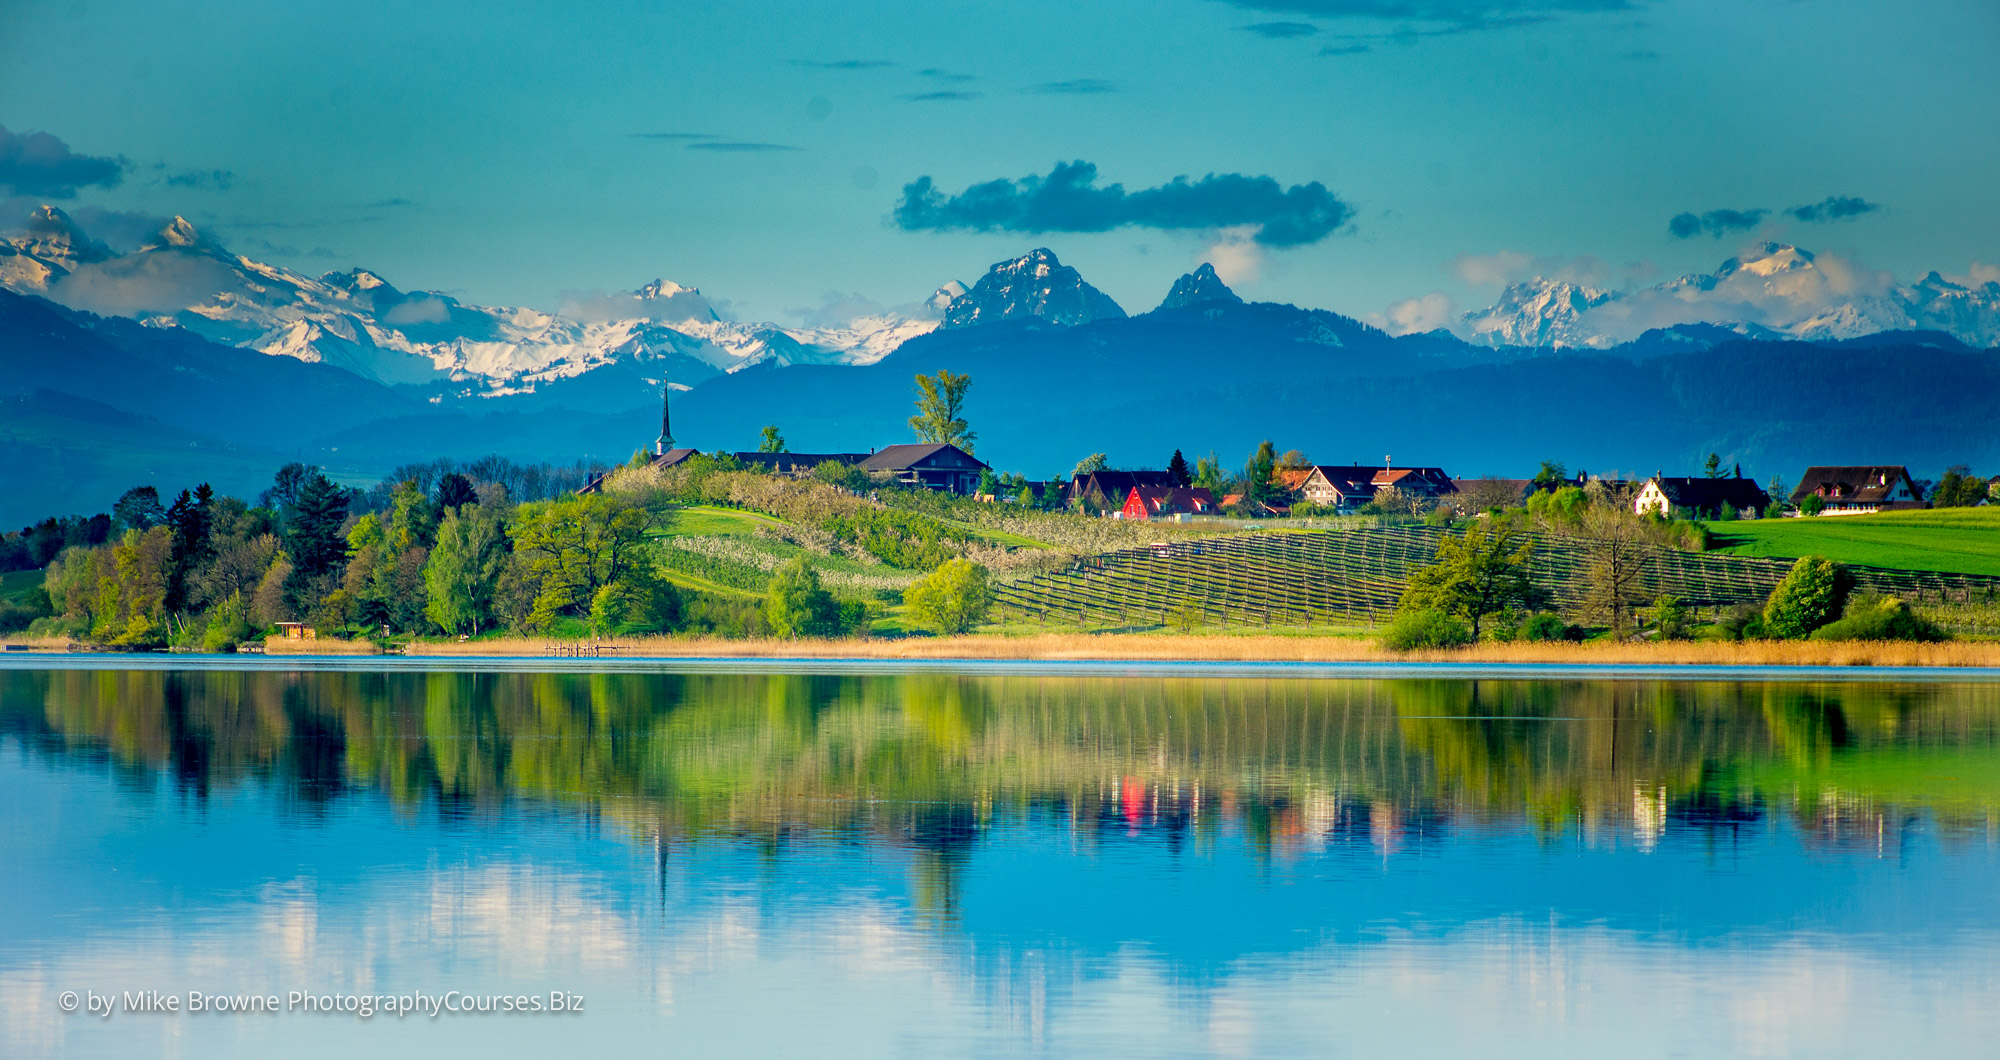 Images In Amp Near Zurich Switzerland By Mike Browne